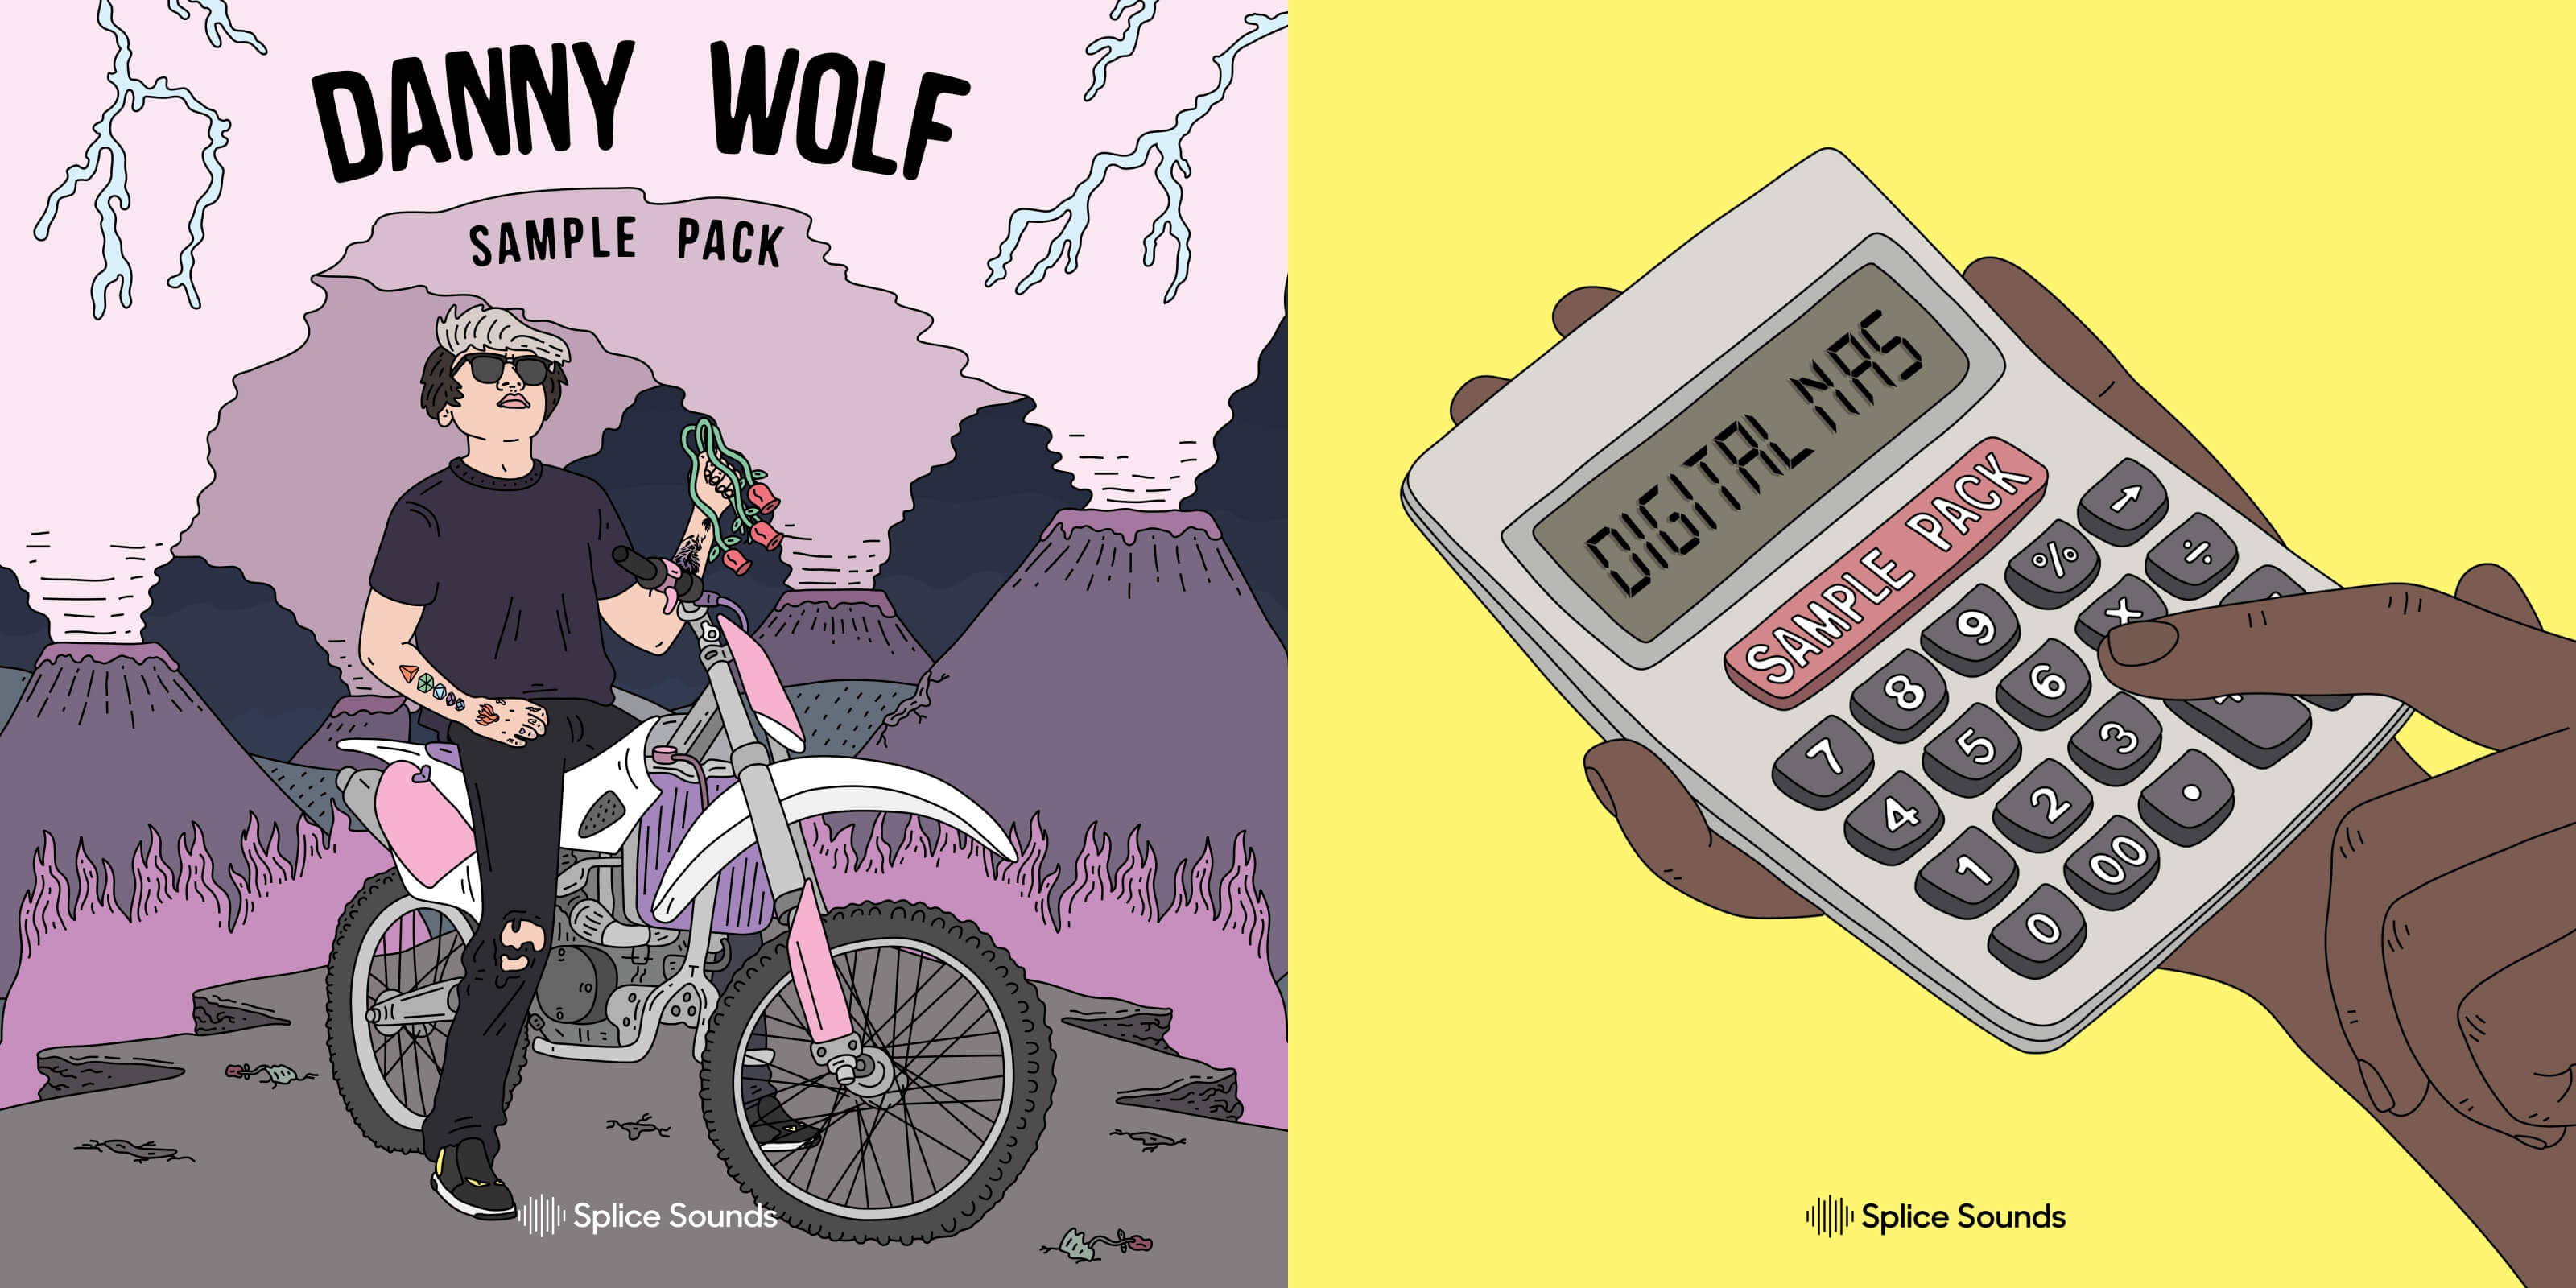 Digital Nas & Danny Wolf Sample Packs available from Splice